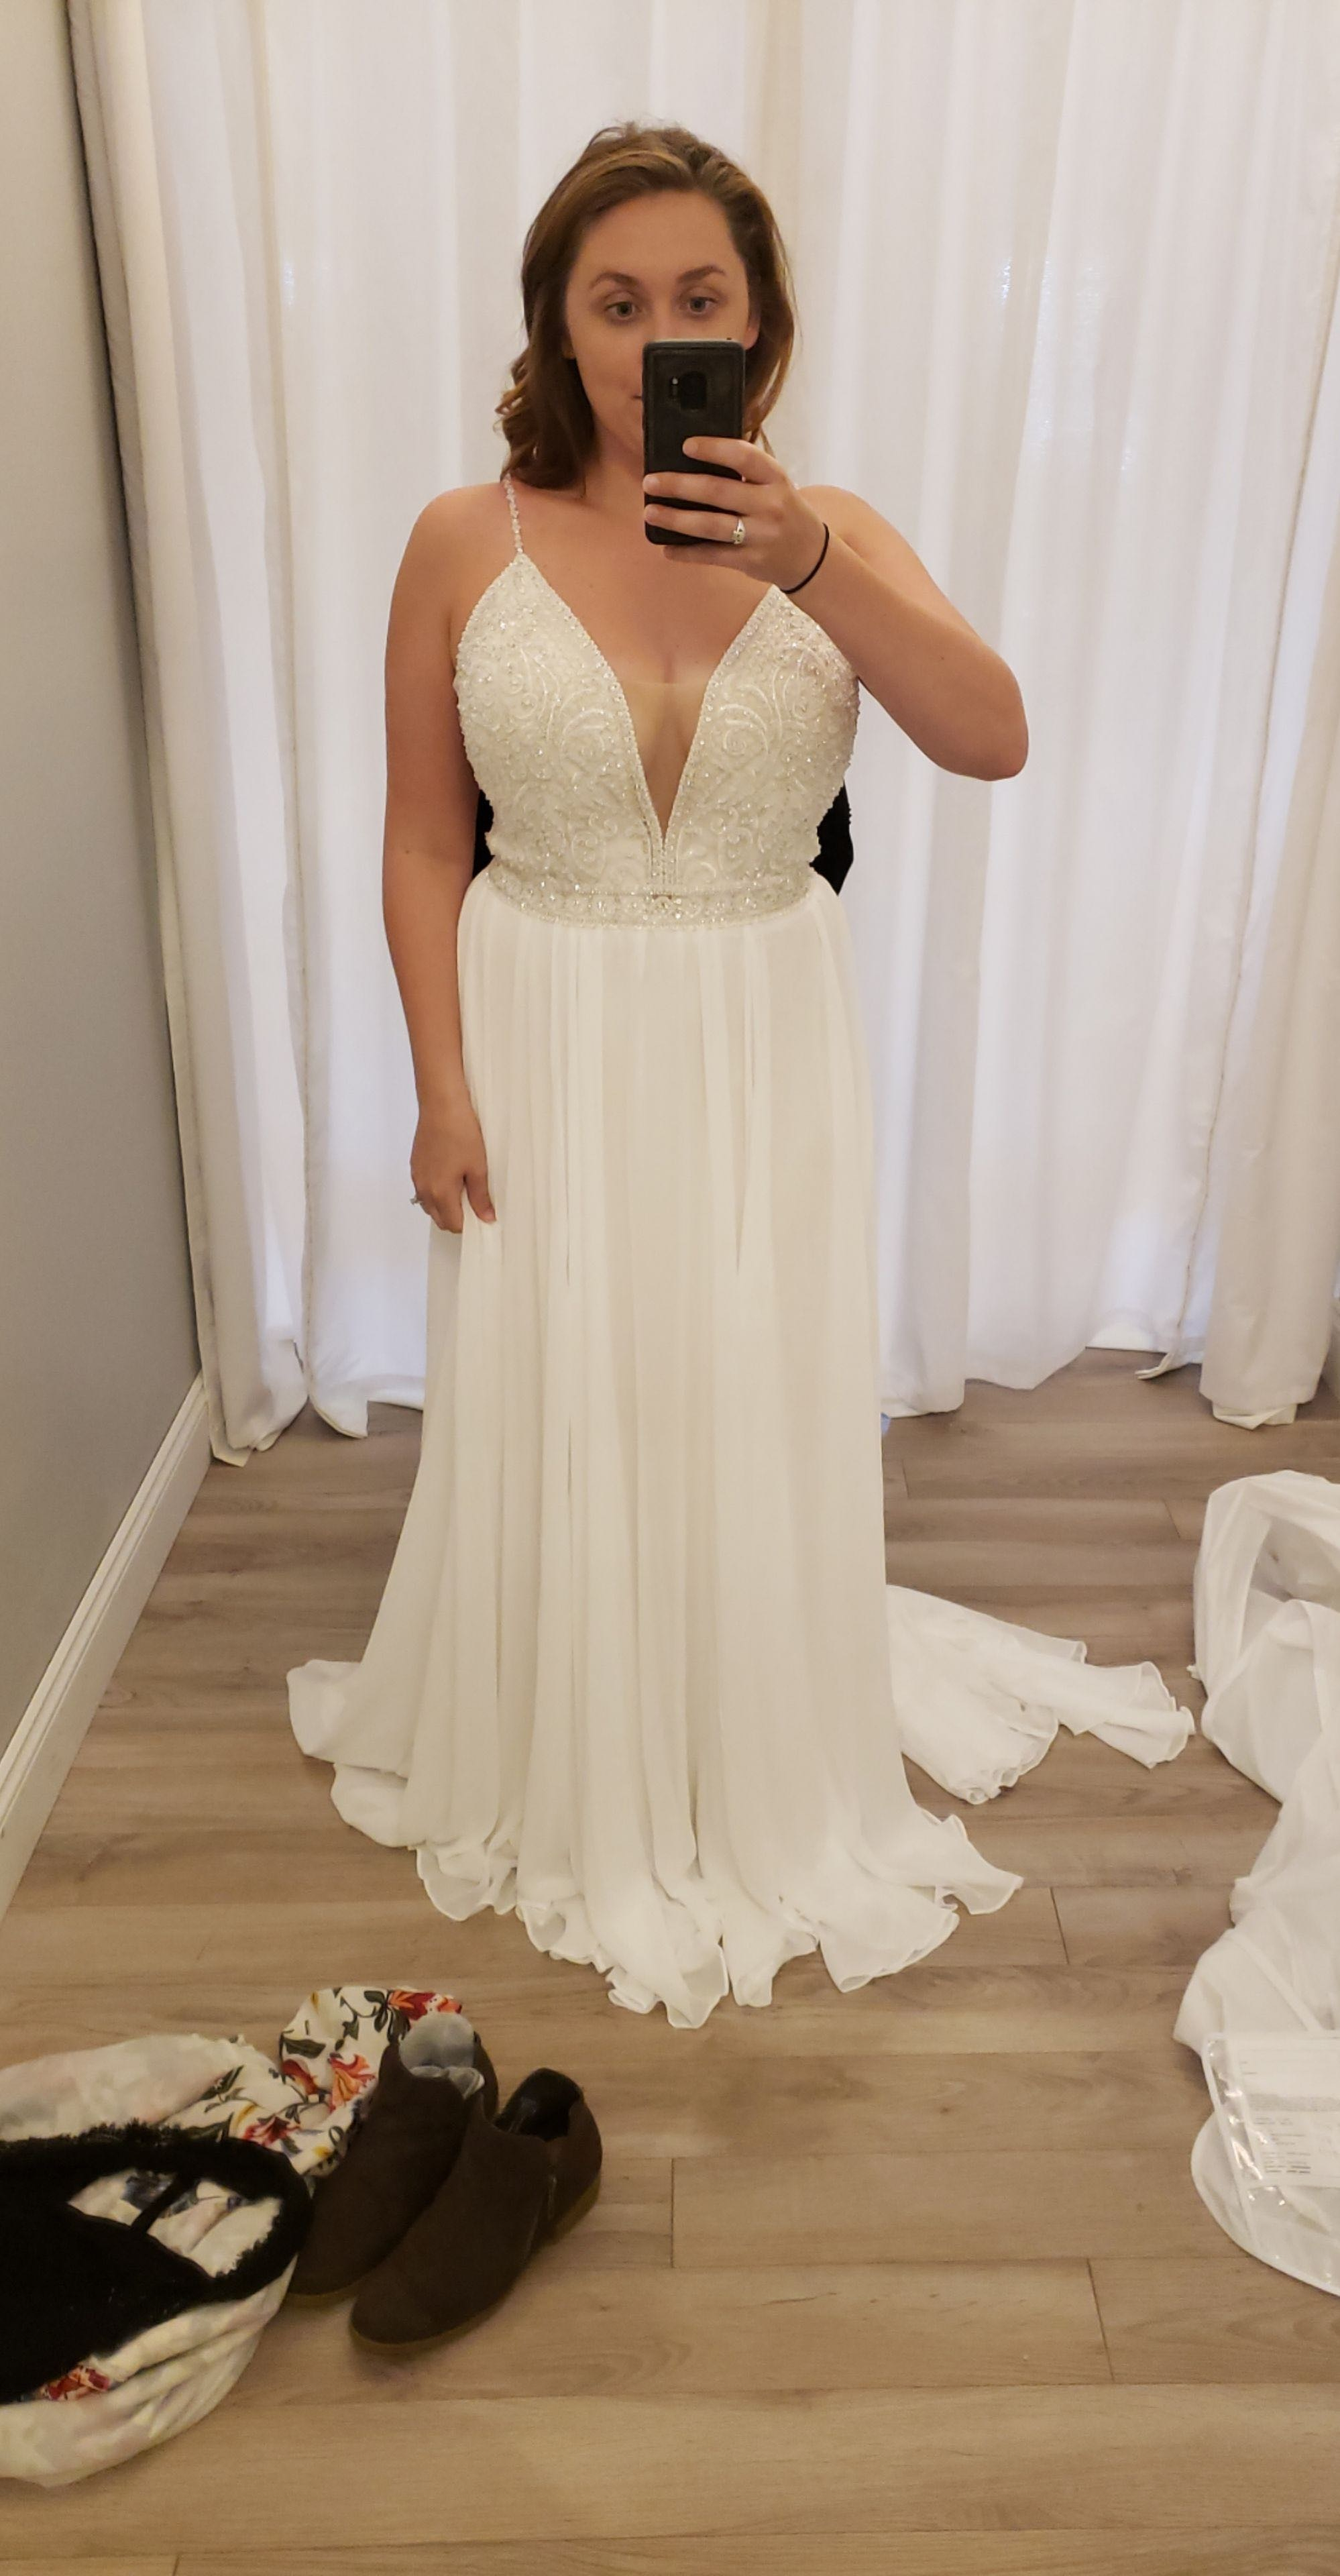 Allure bridals - 9622 size 14 - $900 - (50% OFF)